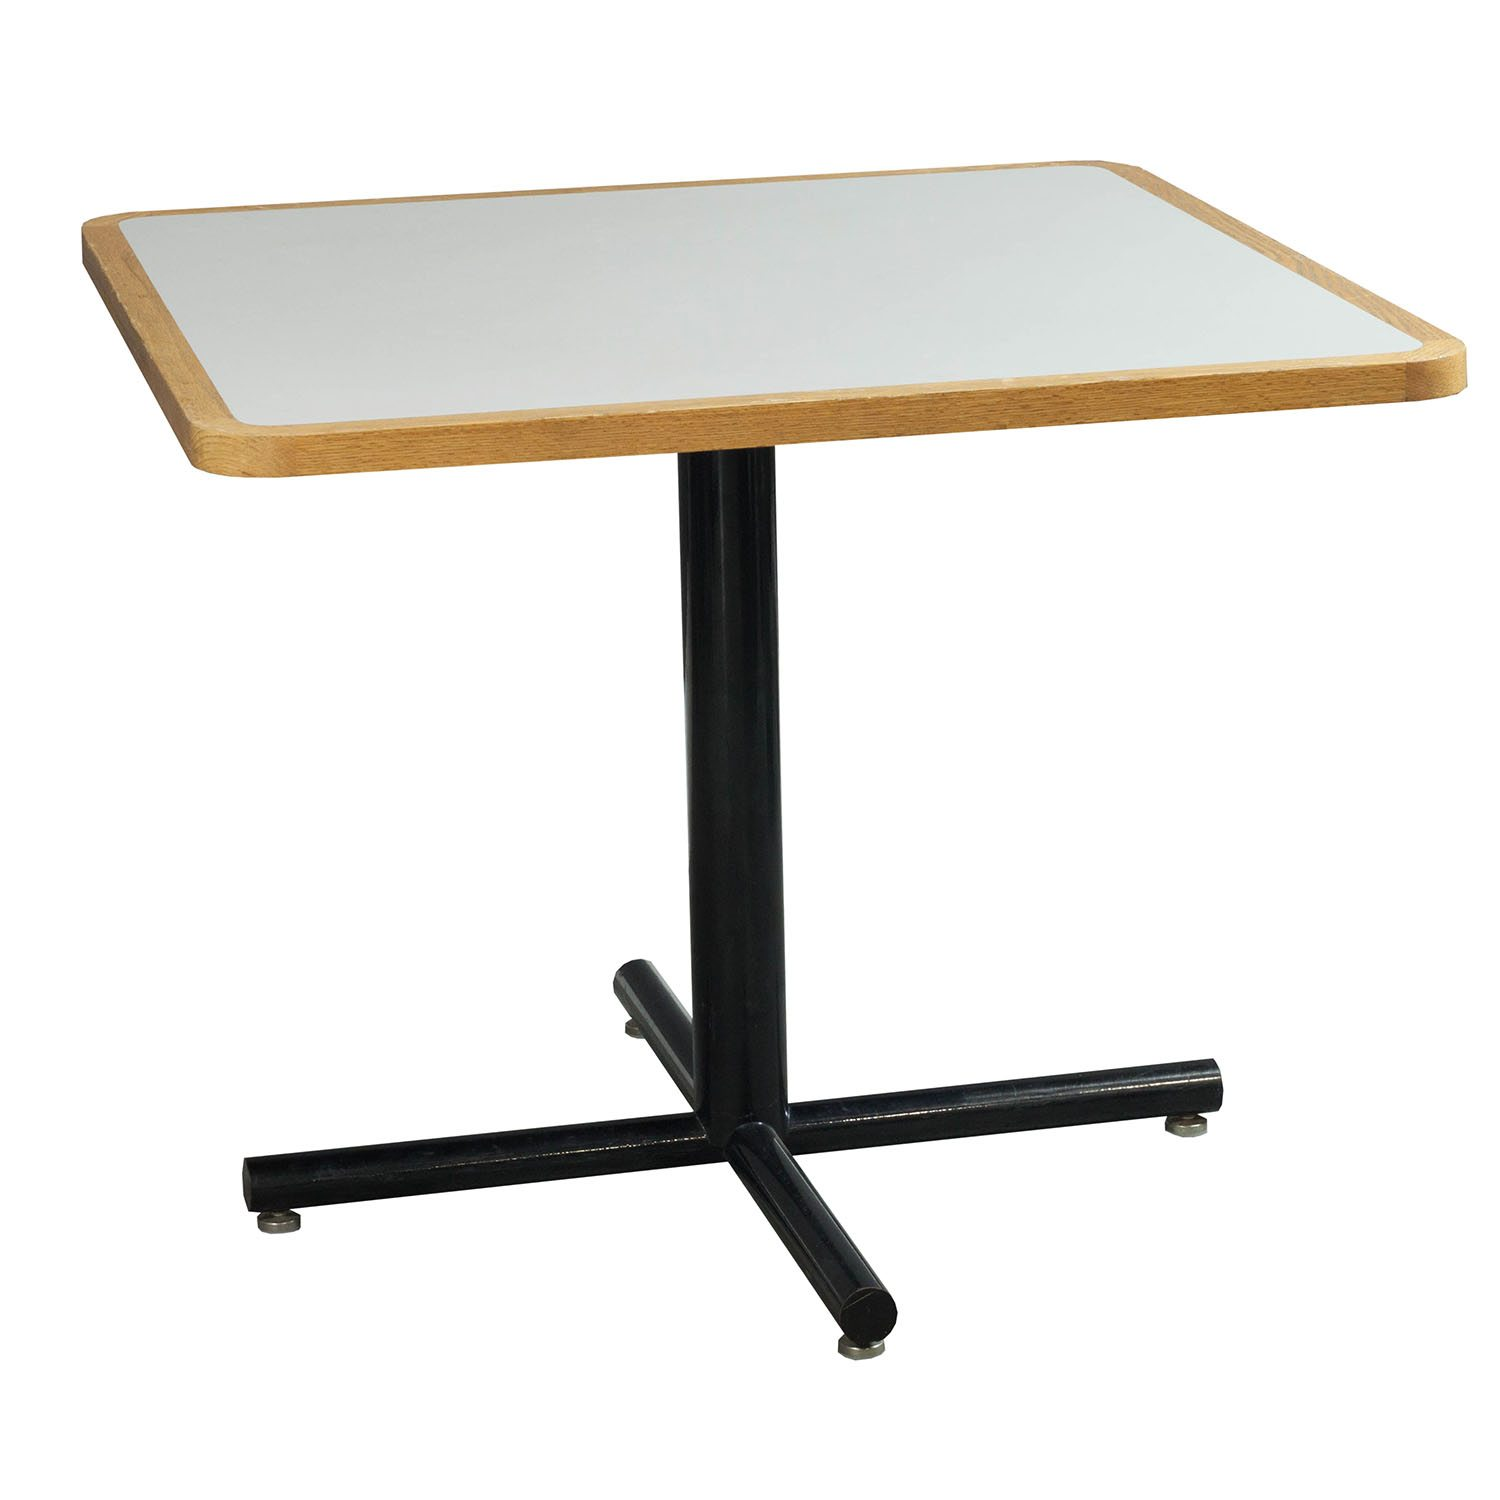 Cafe Tables Used Squared 36 Inch Cafe Table White And Maple National